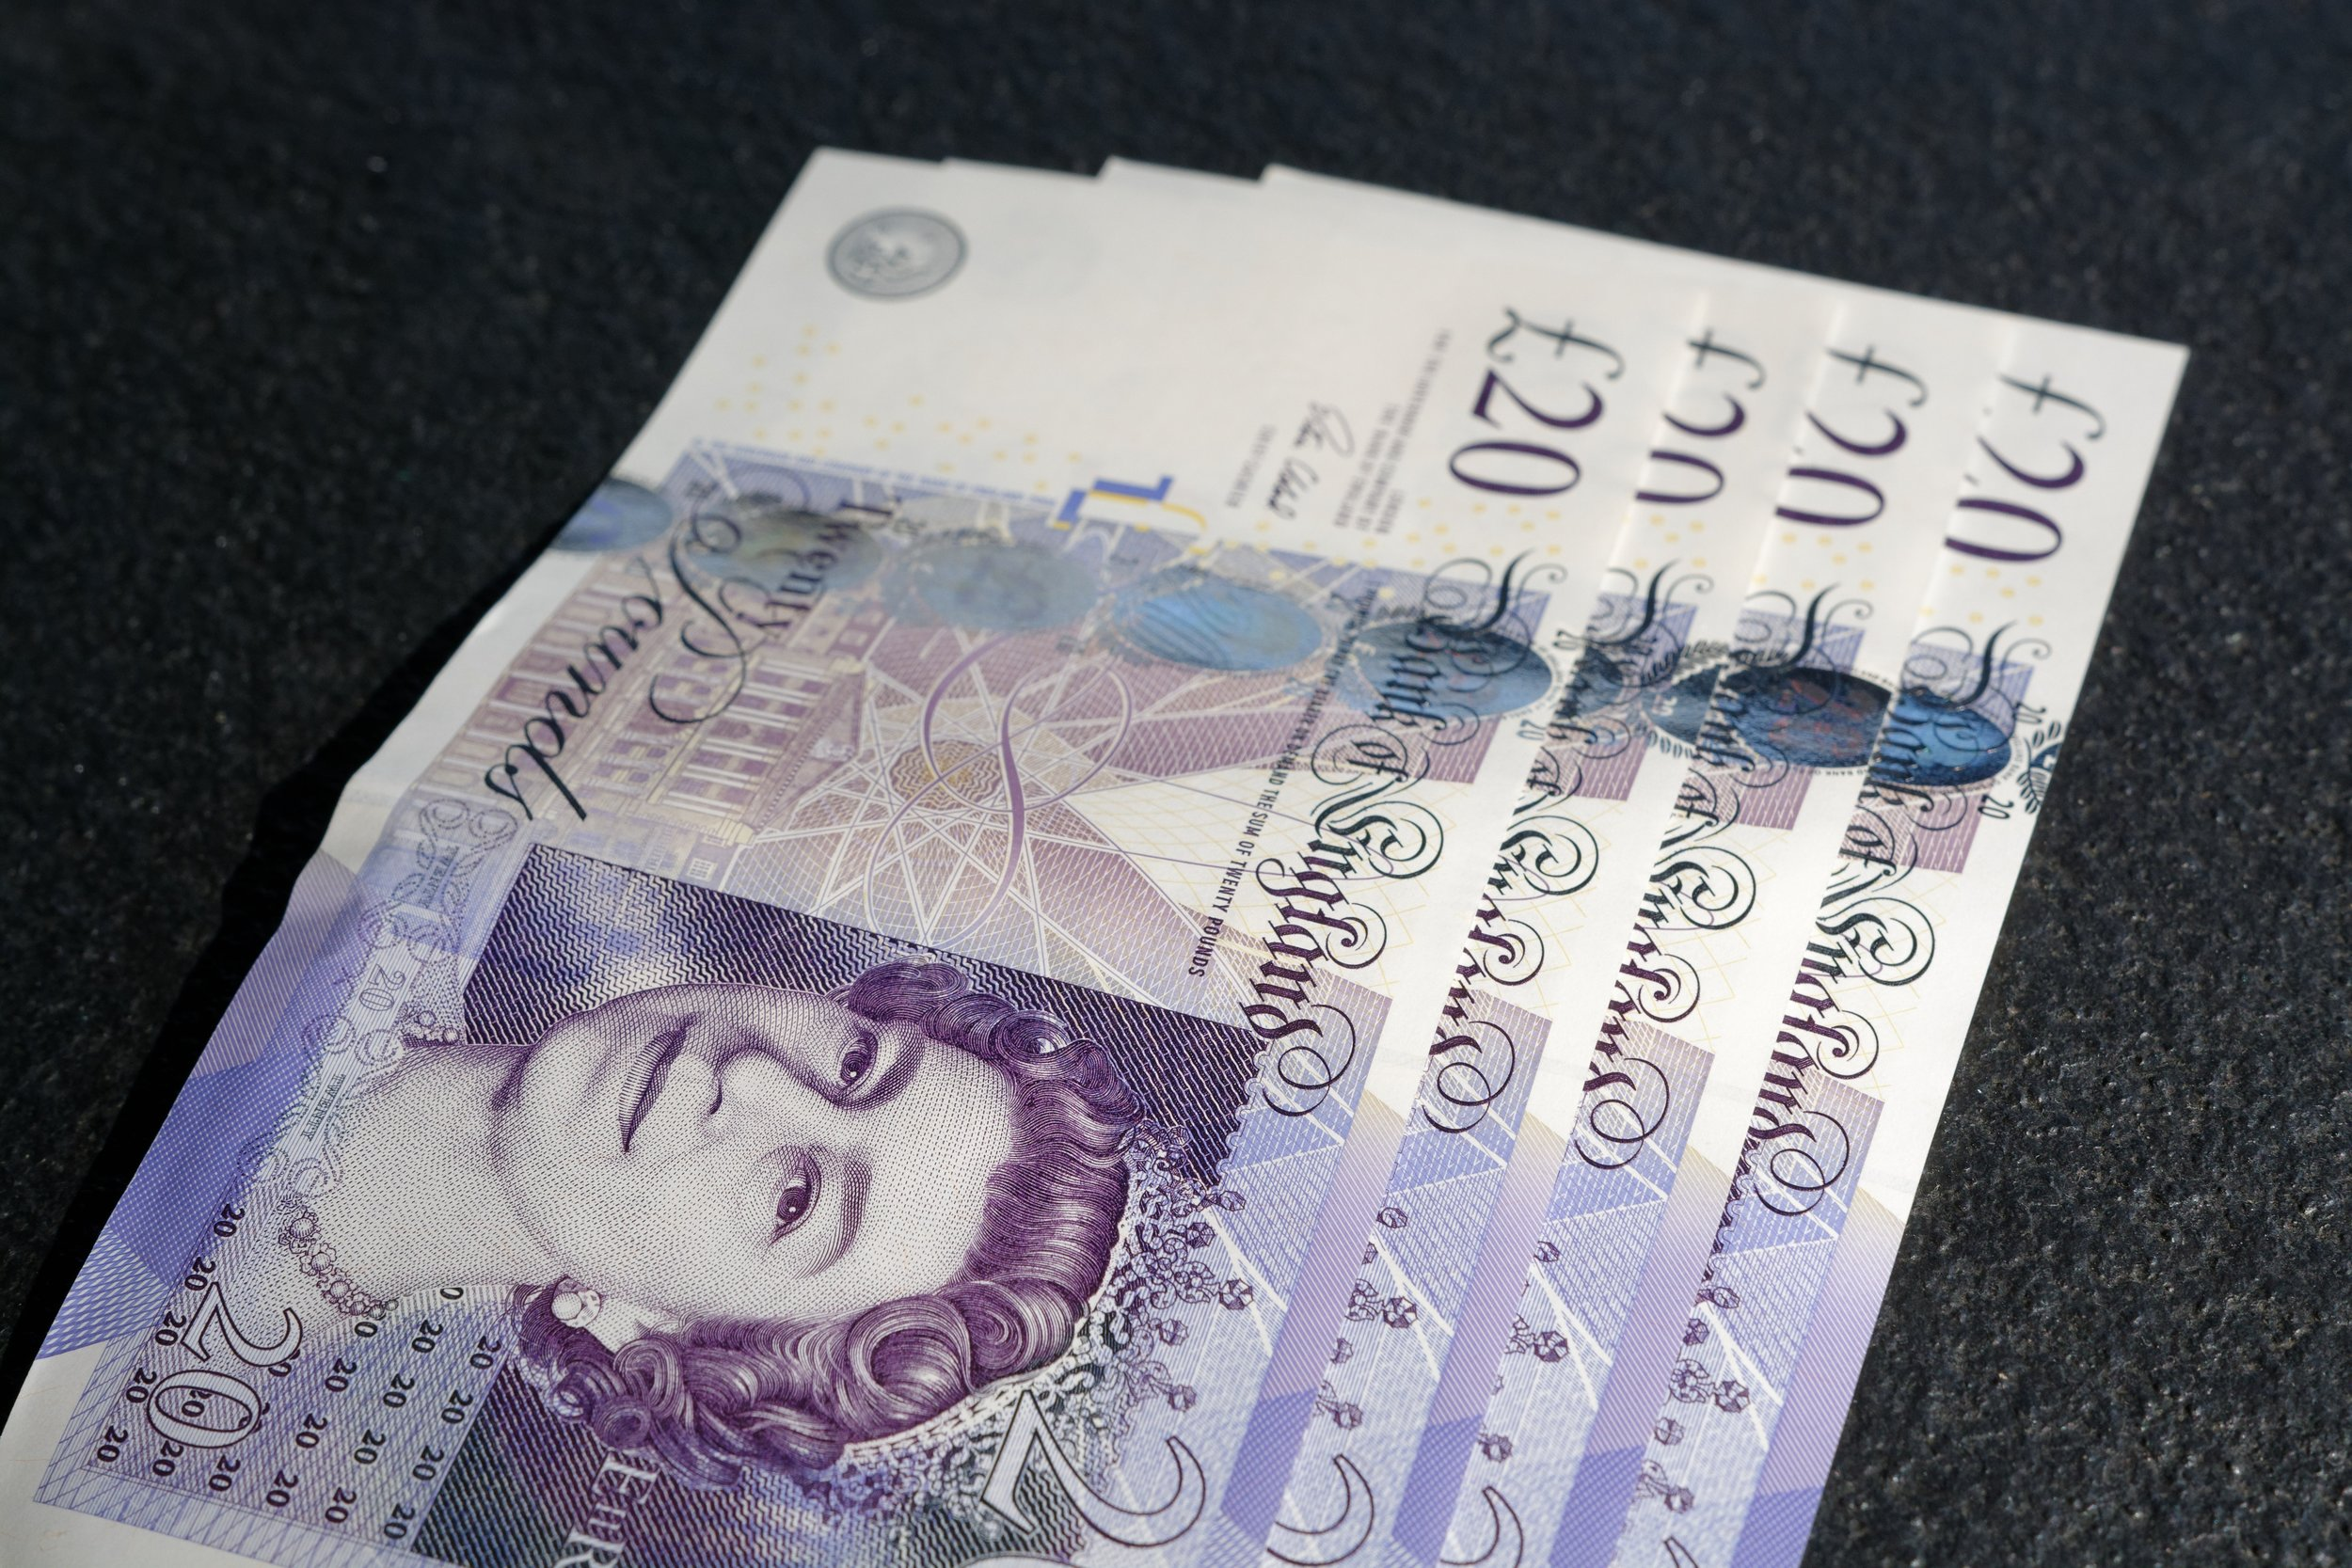 Bunch of £20 notes